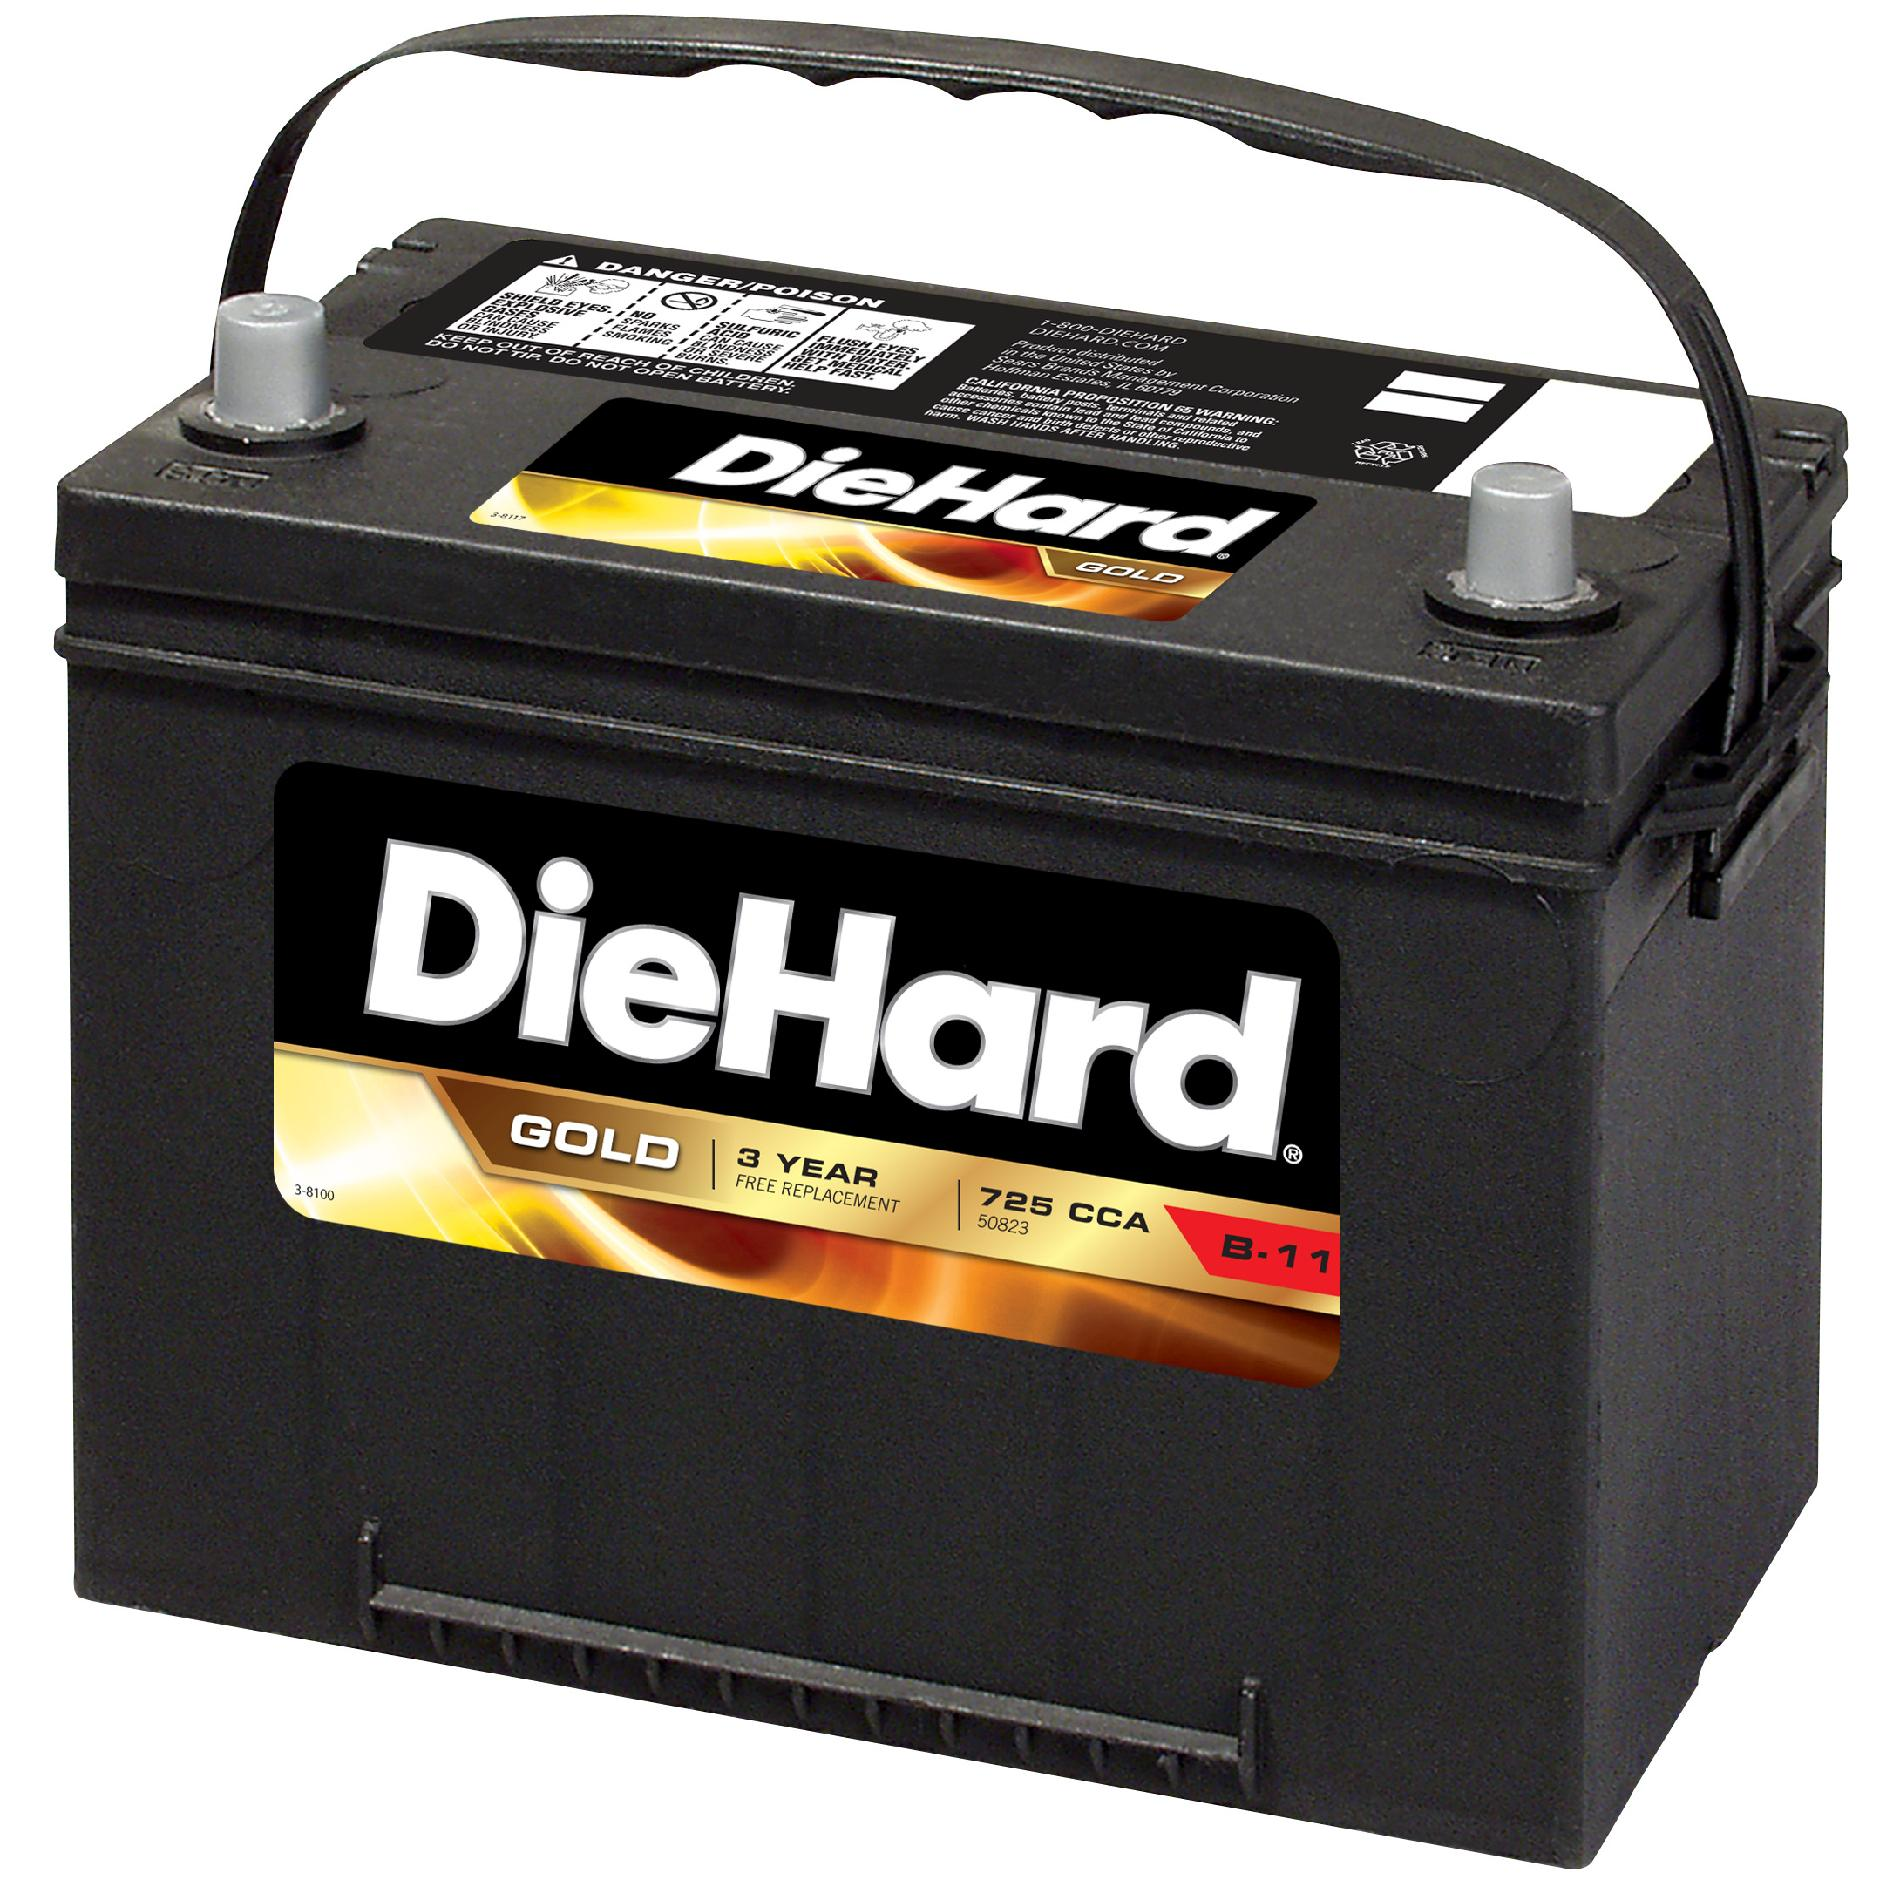 hight resolution of diehard gold automotive battery group size ep 24f price with exchange